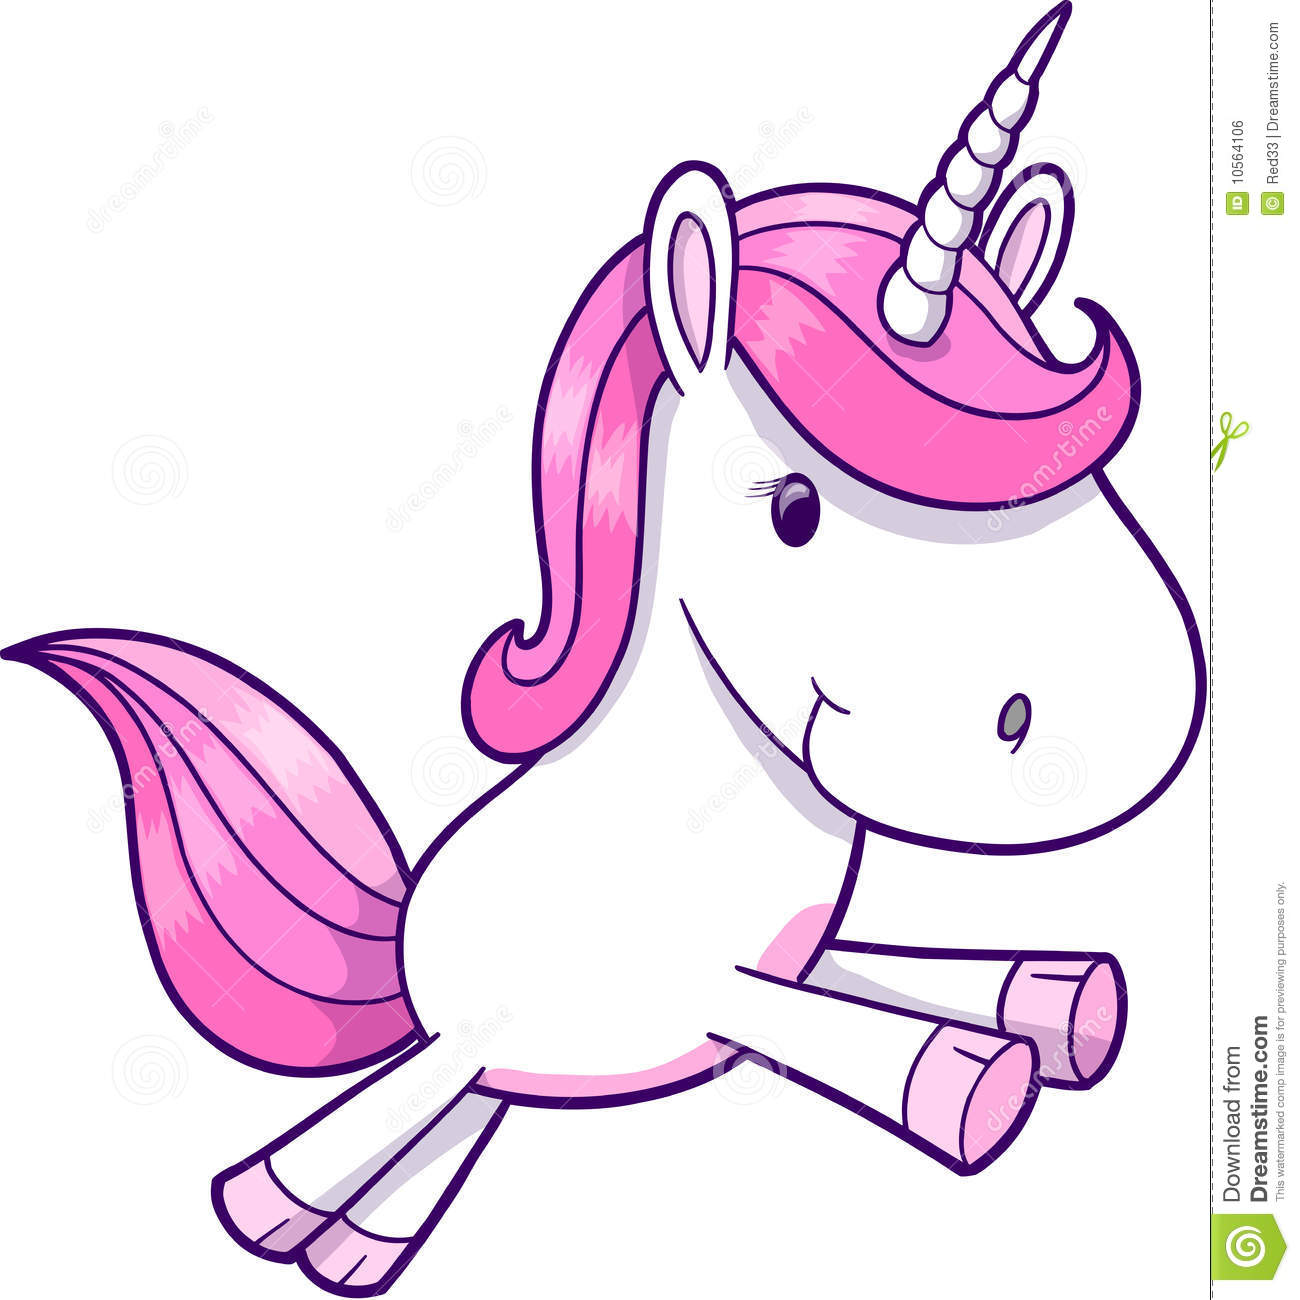 Image result for royalty free images unicorns